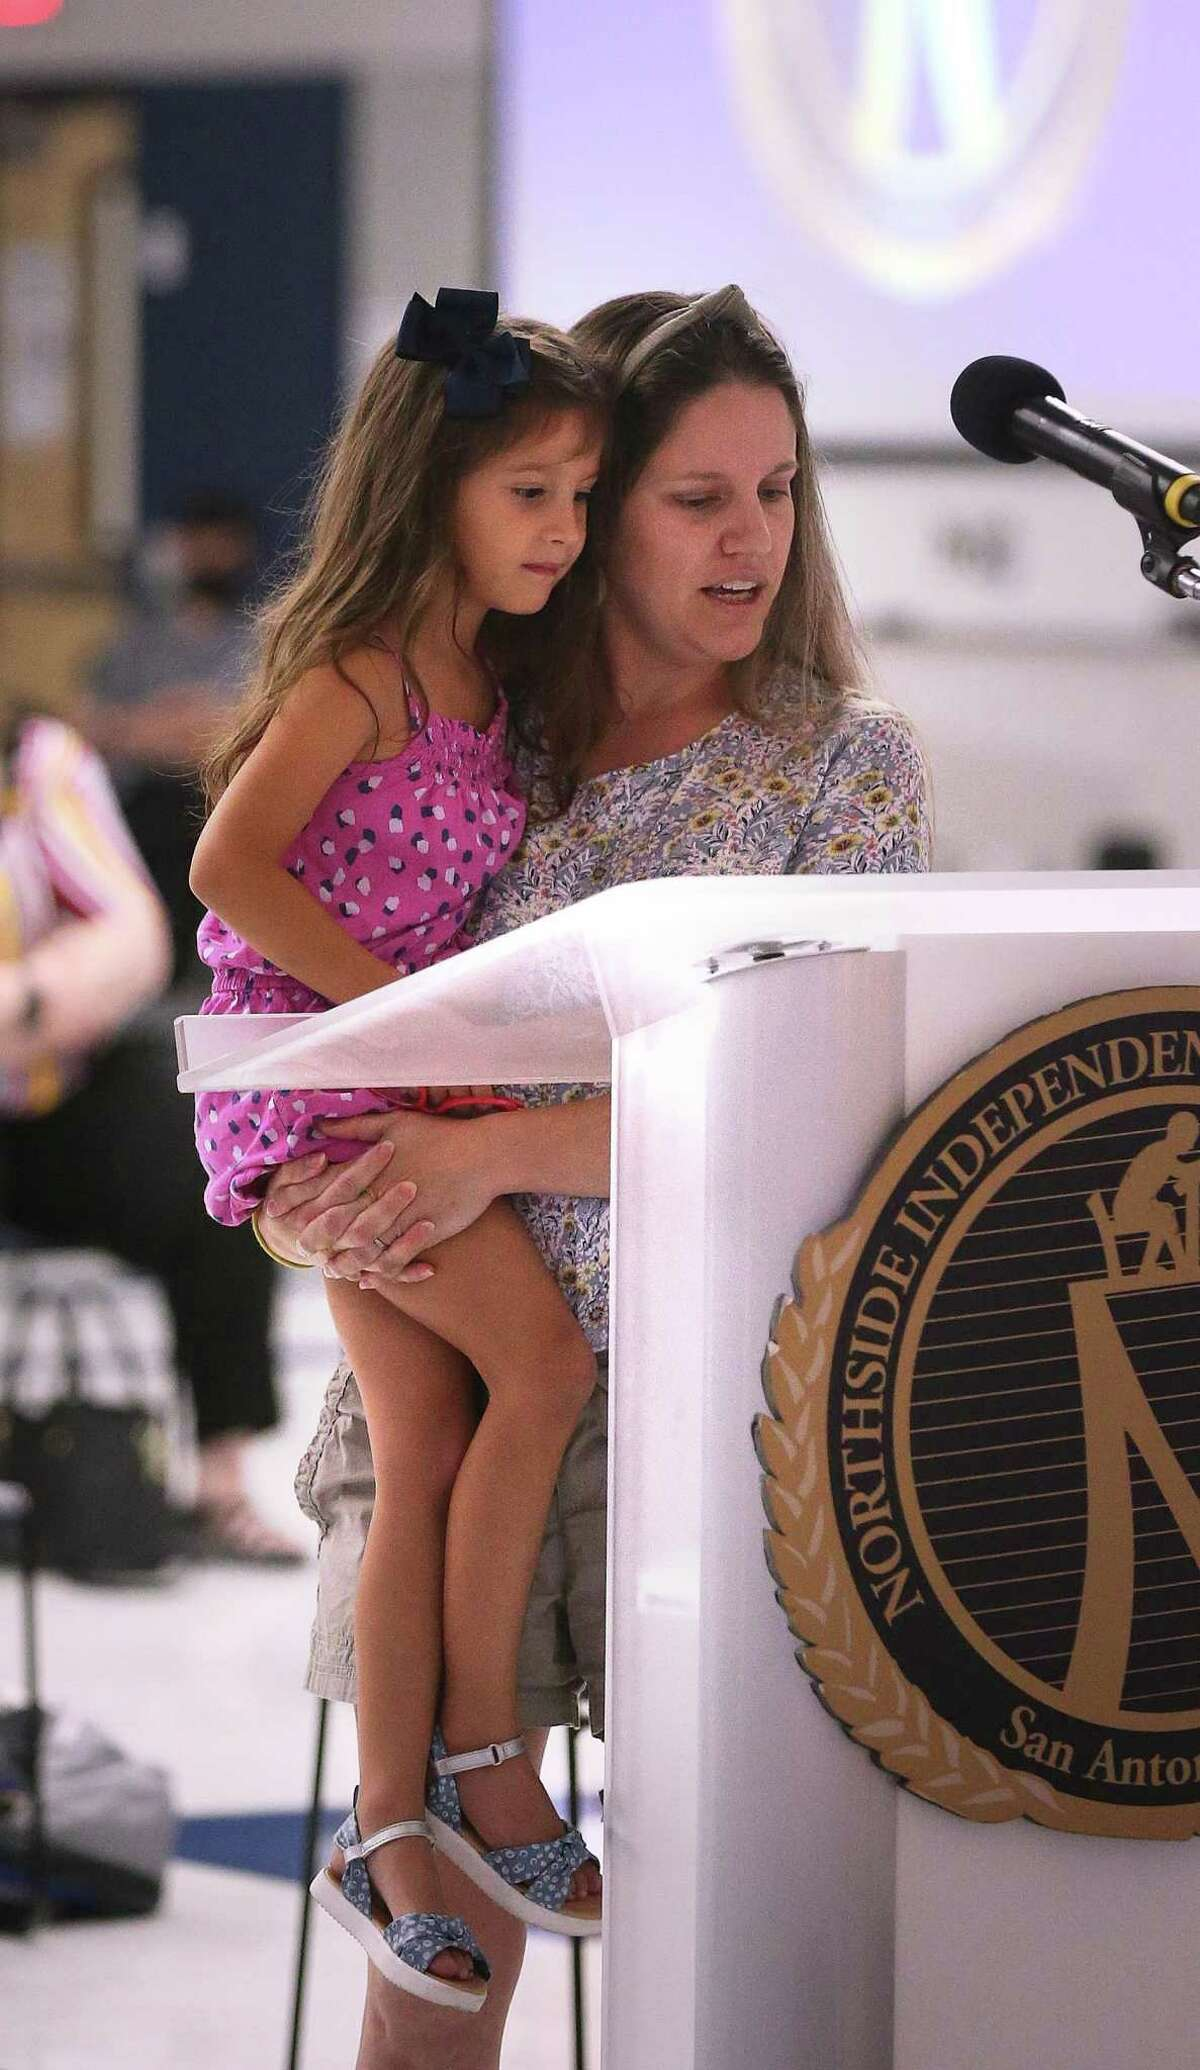 At Northside ISD's board meeting, Lesley Casias reads with her daughter Irelynn, 5, the letter she wrote last night on why they should not mandate wearing a mask.